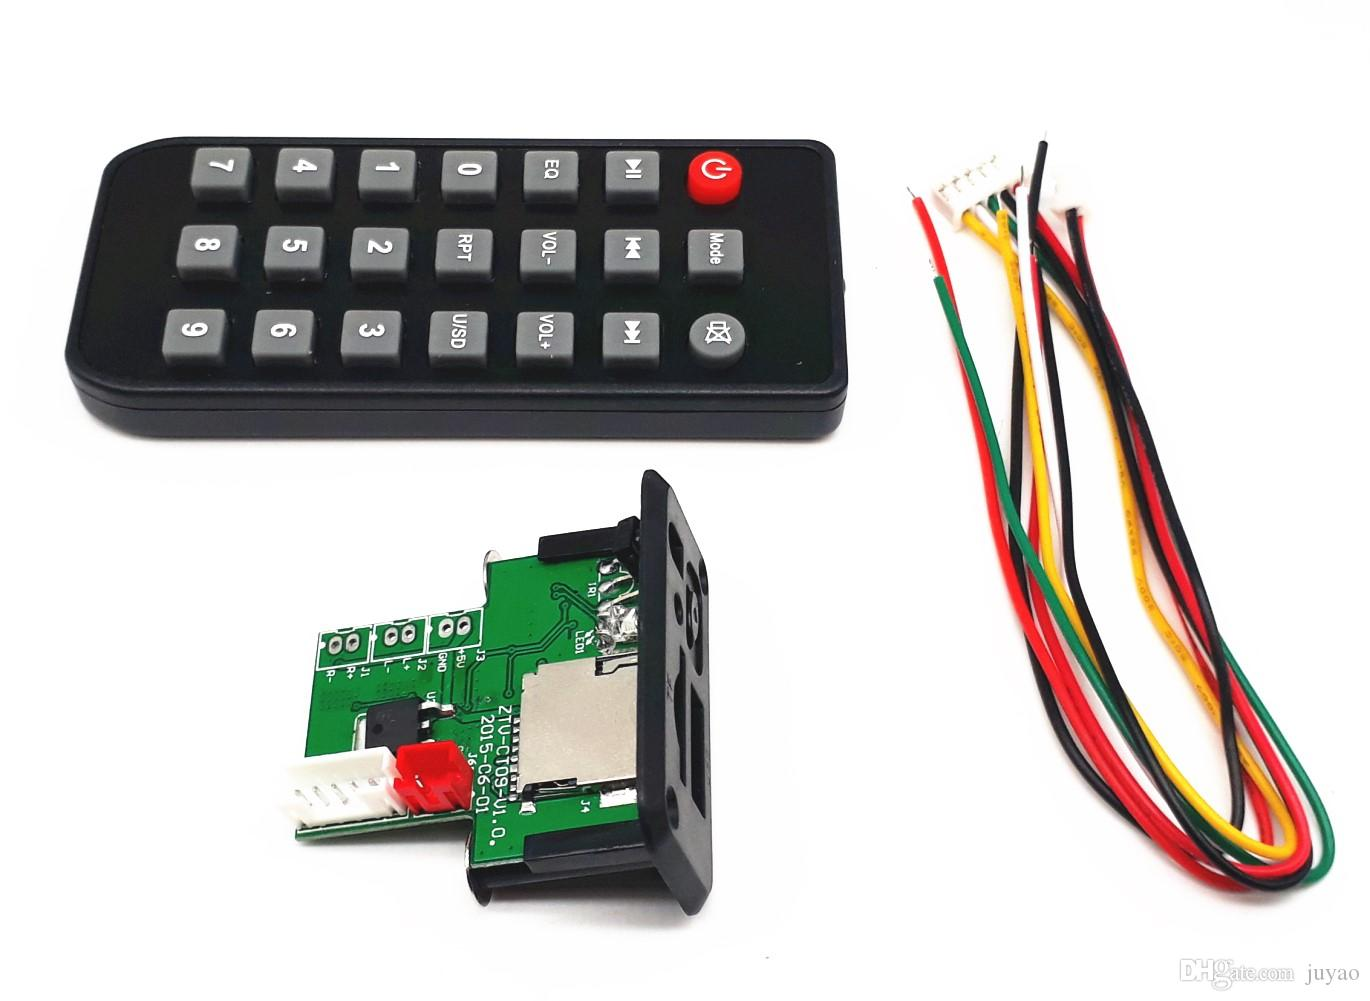 DC5V/12V Mini MP3 Decoder Board Decoding Module Speaker Parts, Connect MP3 USB TF Card for Car/Stereo Modification